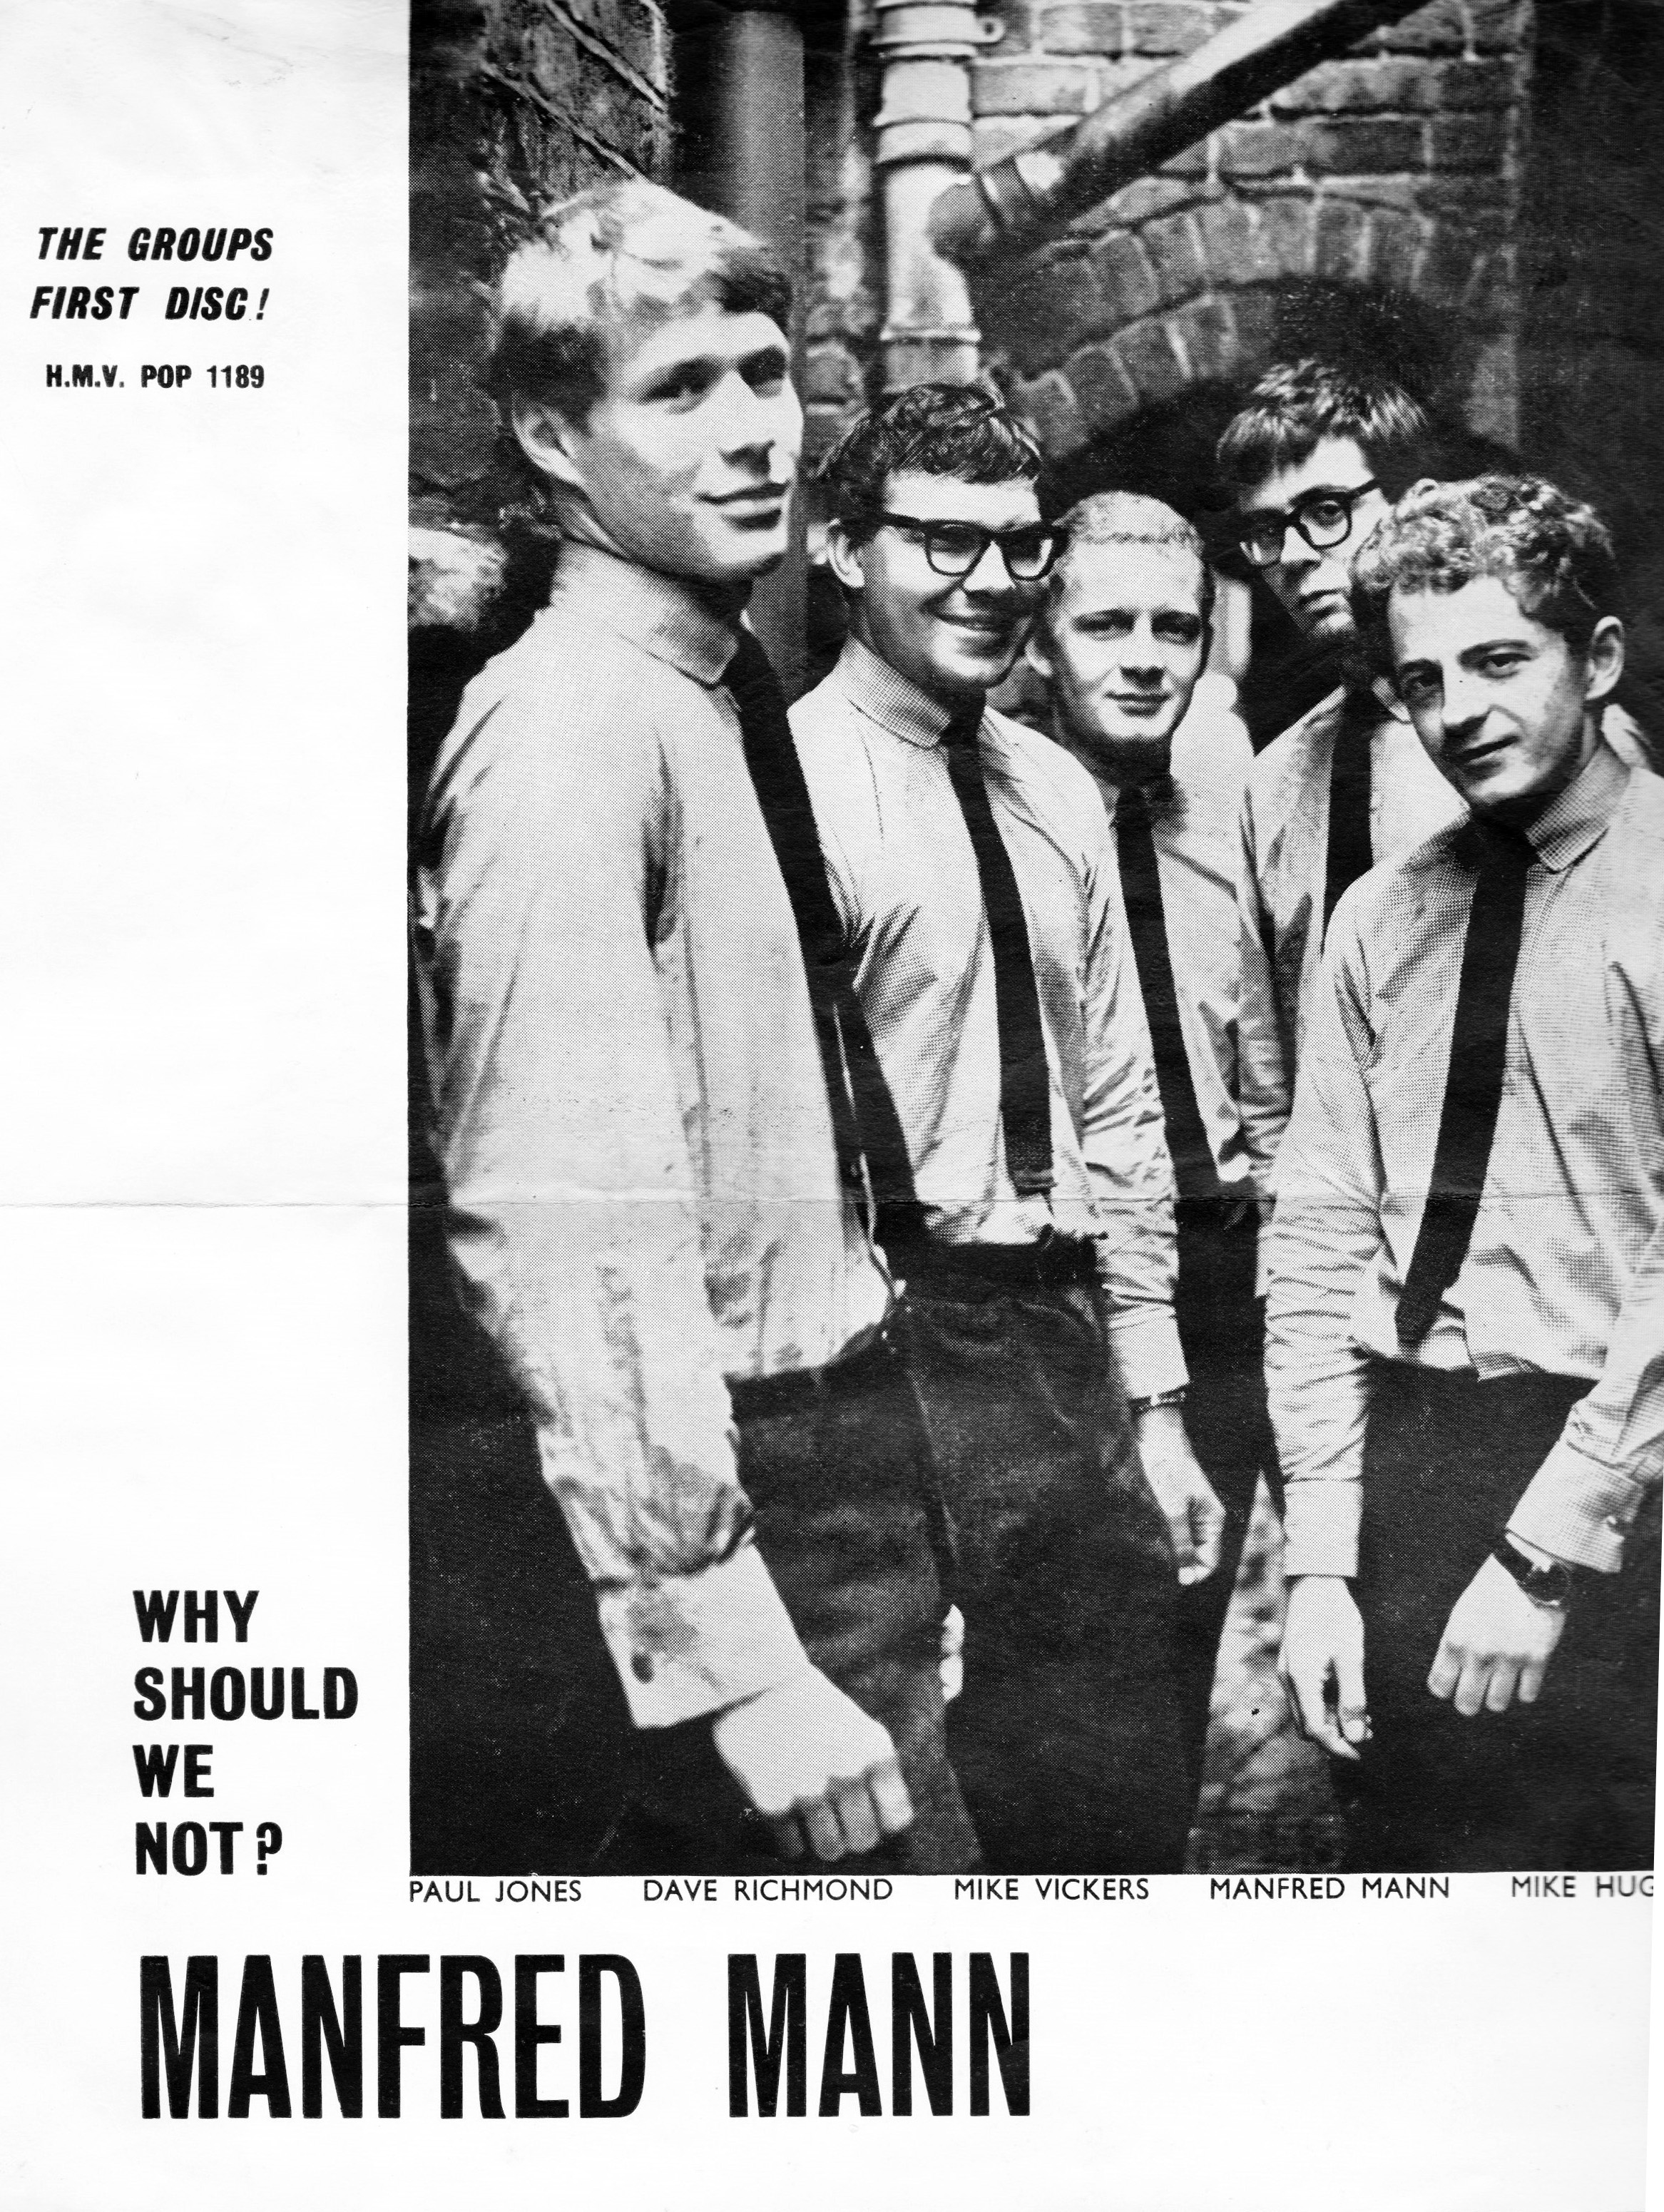 Dave Richmond with Manfred Mann in 1963